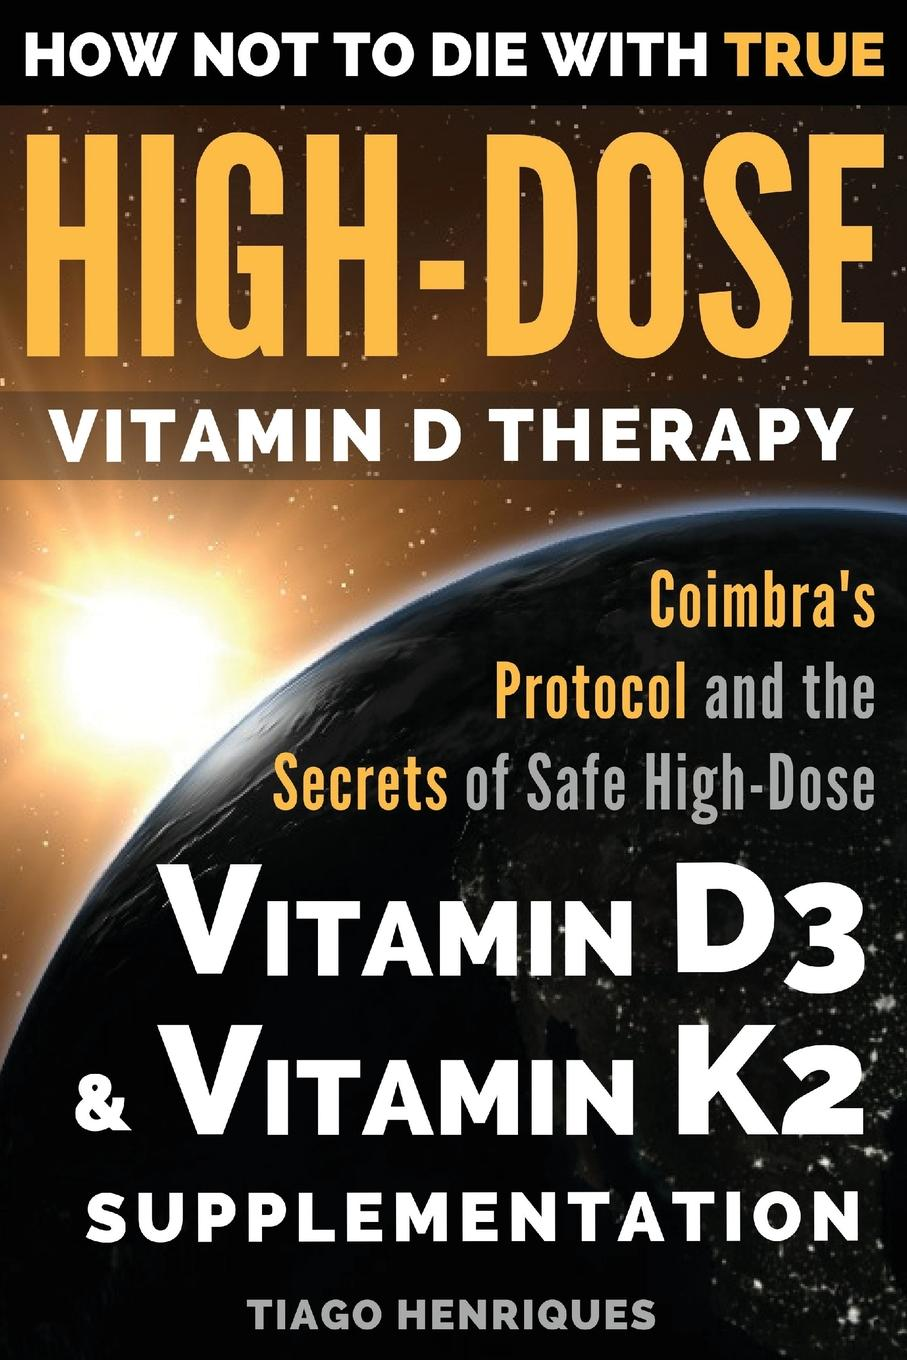 How Not to Die with True High-Dose Vitamin D Therapy: Coimbra's Protocol and the Secrets of Safe High-Dose Vitamin D3 and Vitamin K2 Supplementation (Paperback)